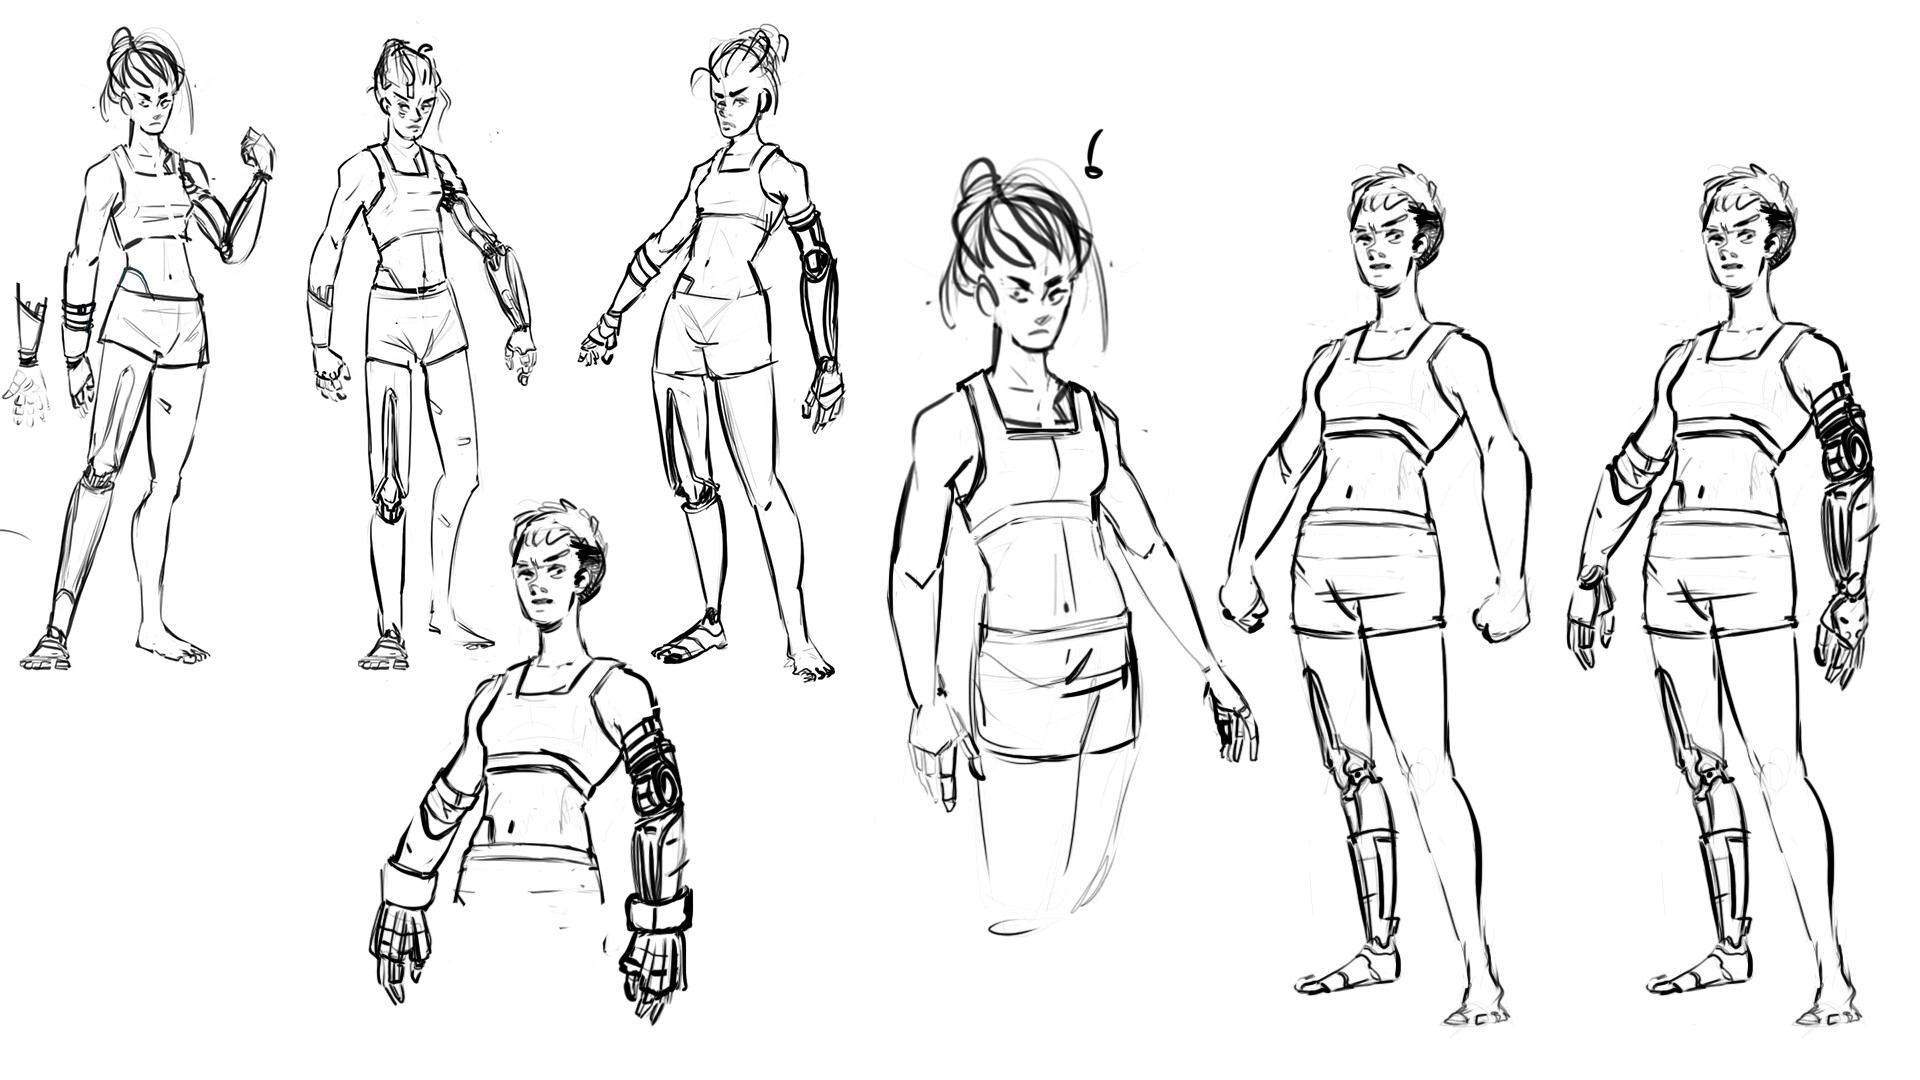 Ramasses romero first sketches